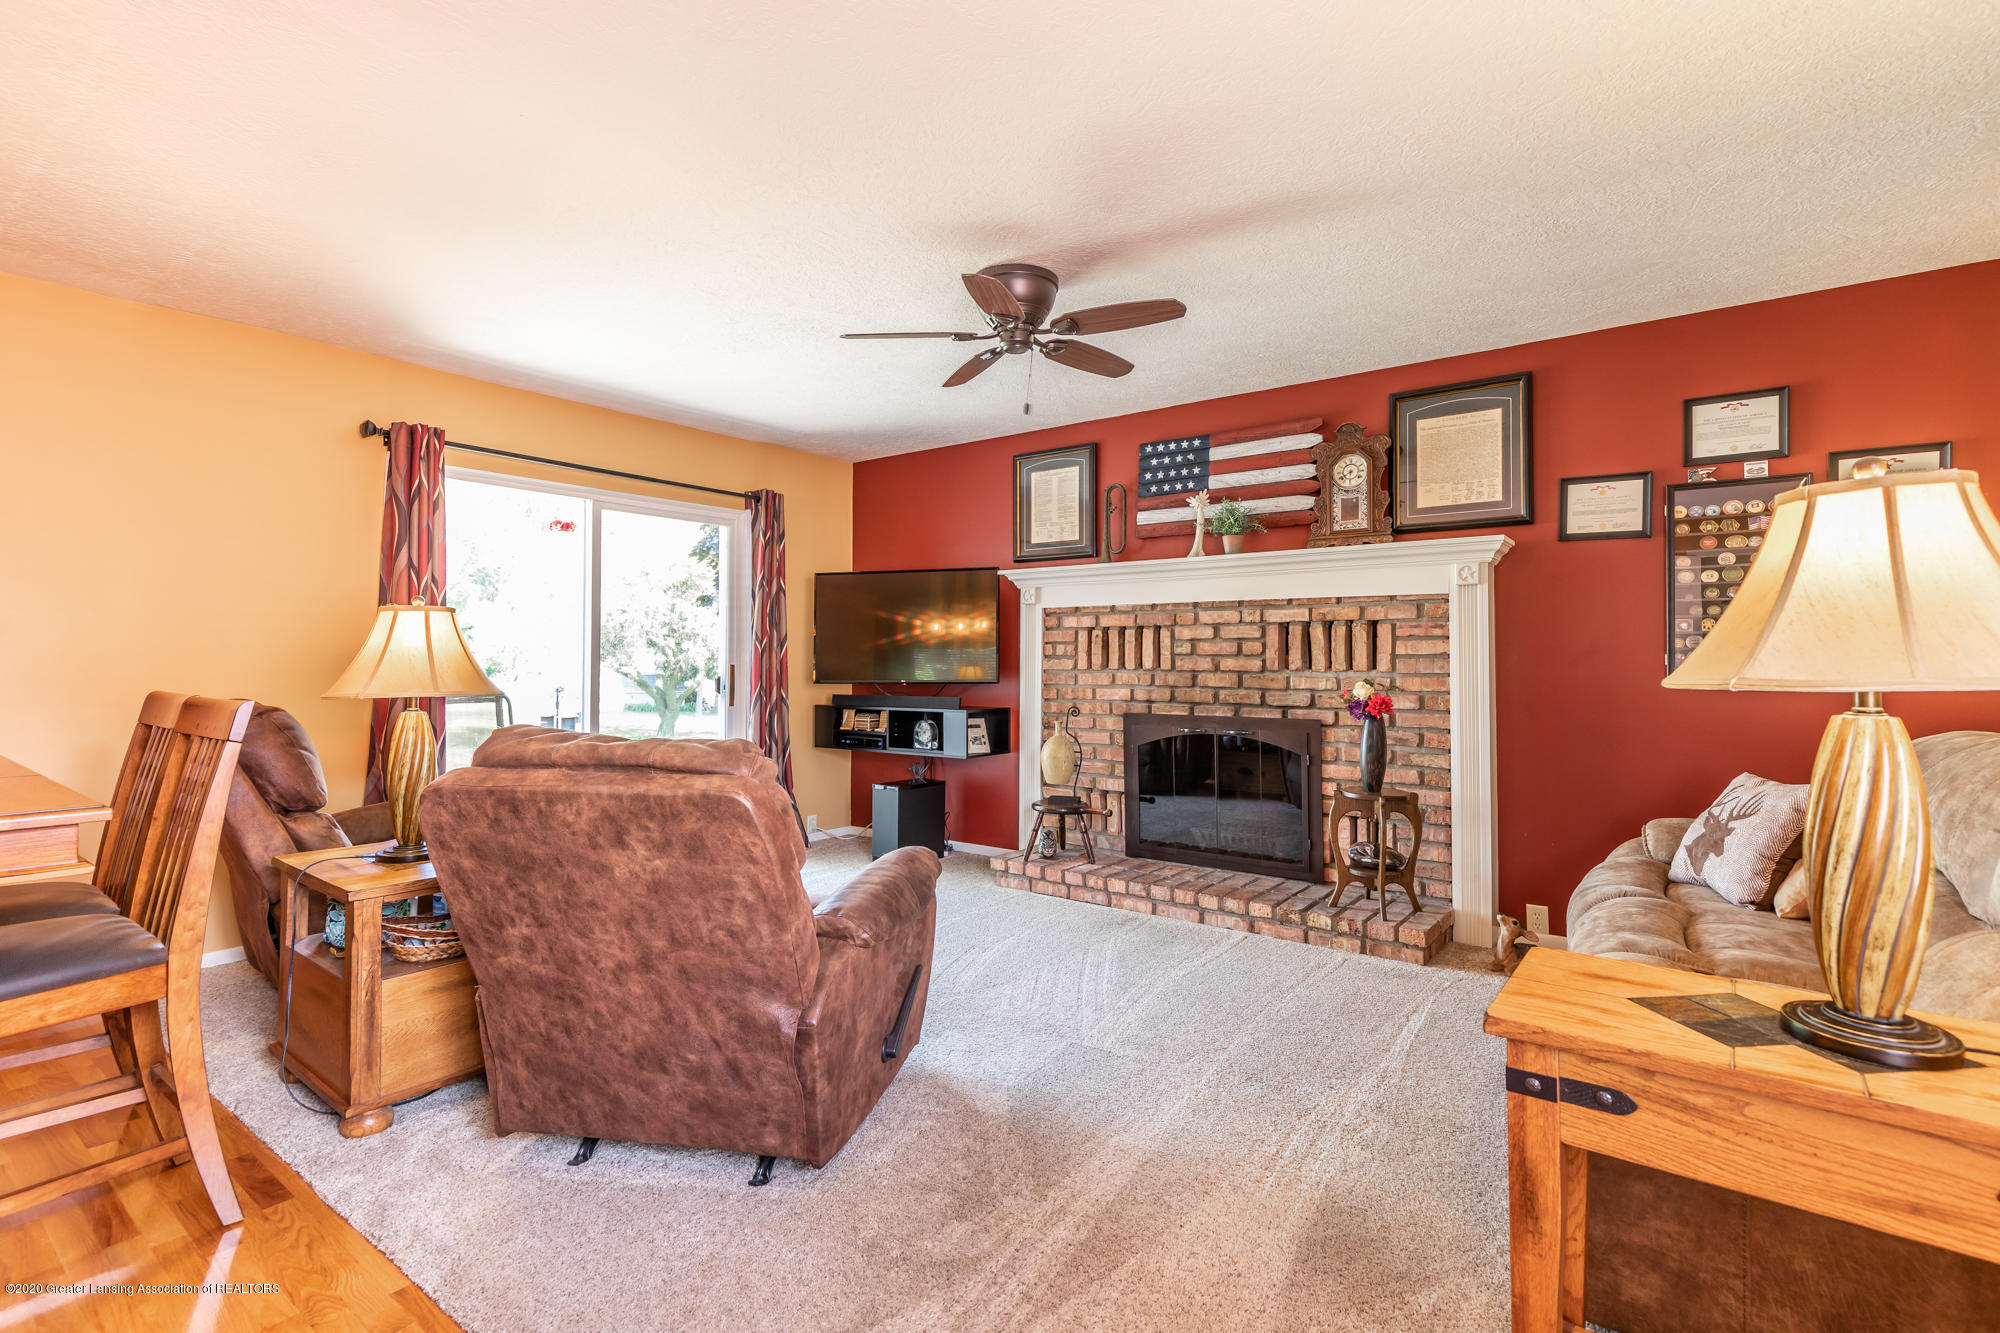 11455 E River Dr - eriverliving(1of1) - 7